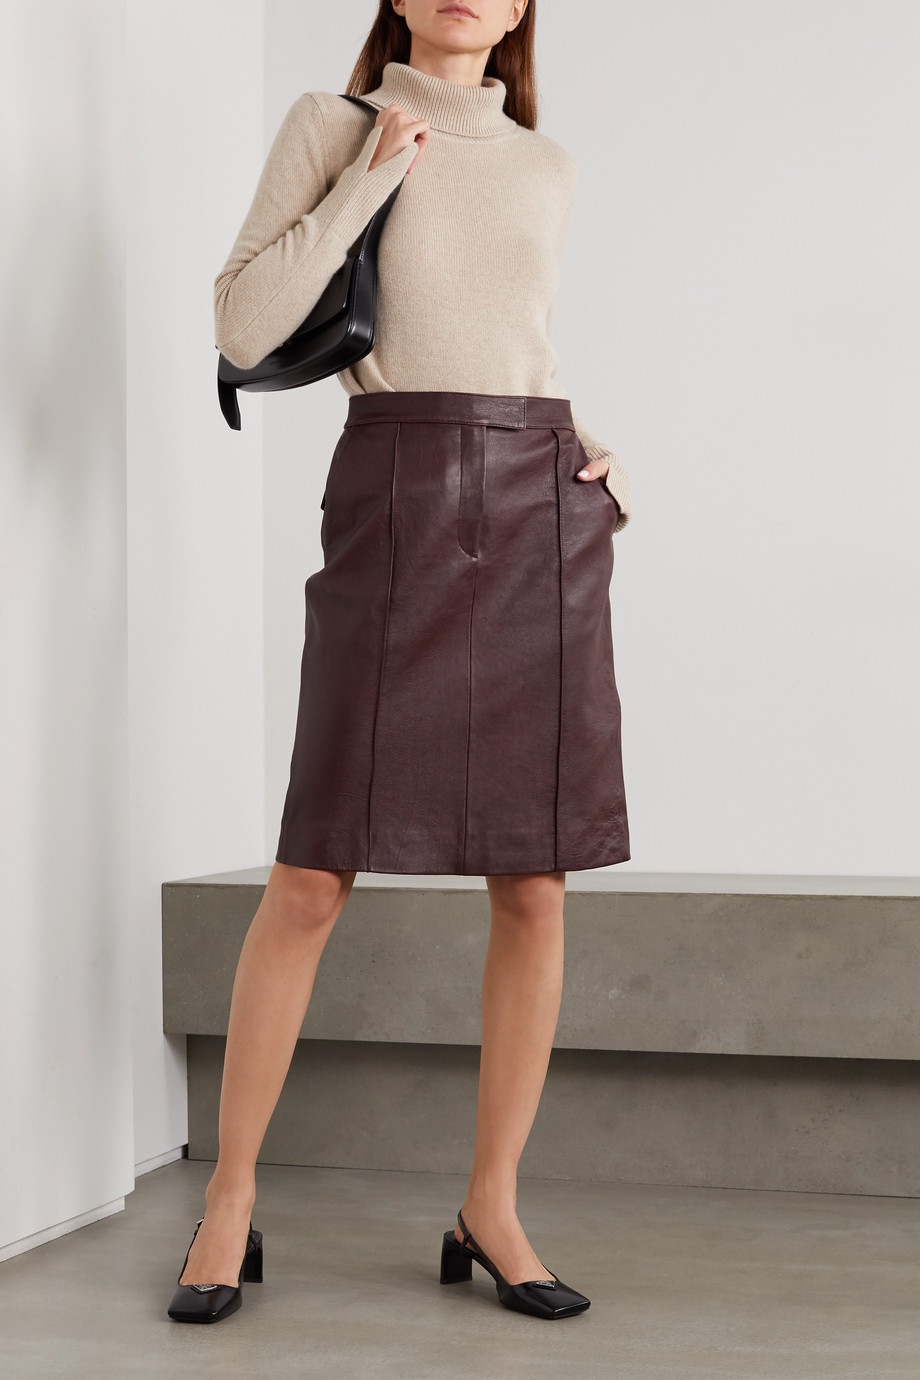 Victoria, Victoria Beckham Paneled leather skirt